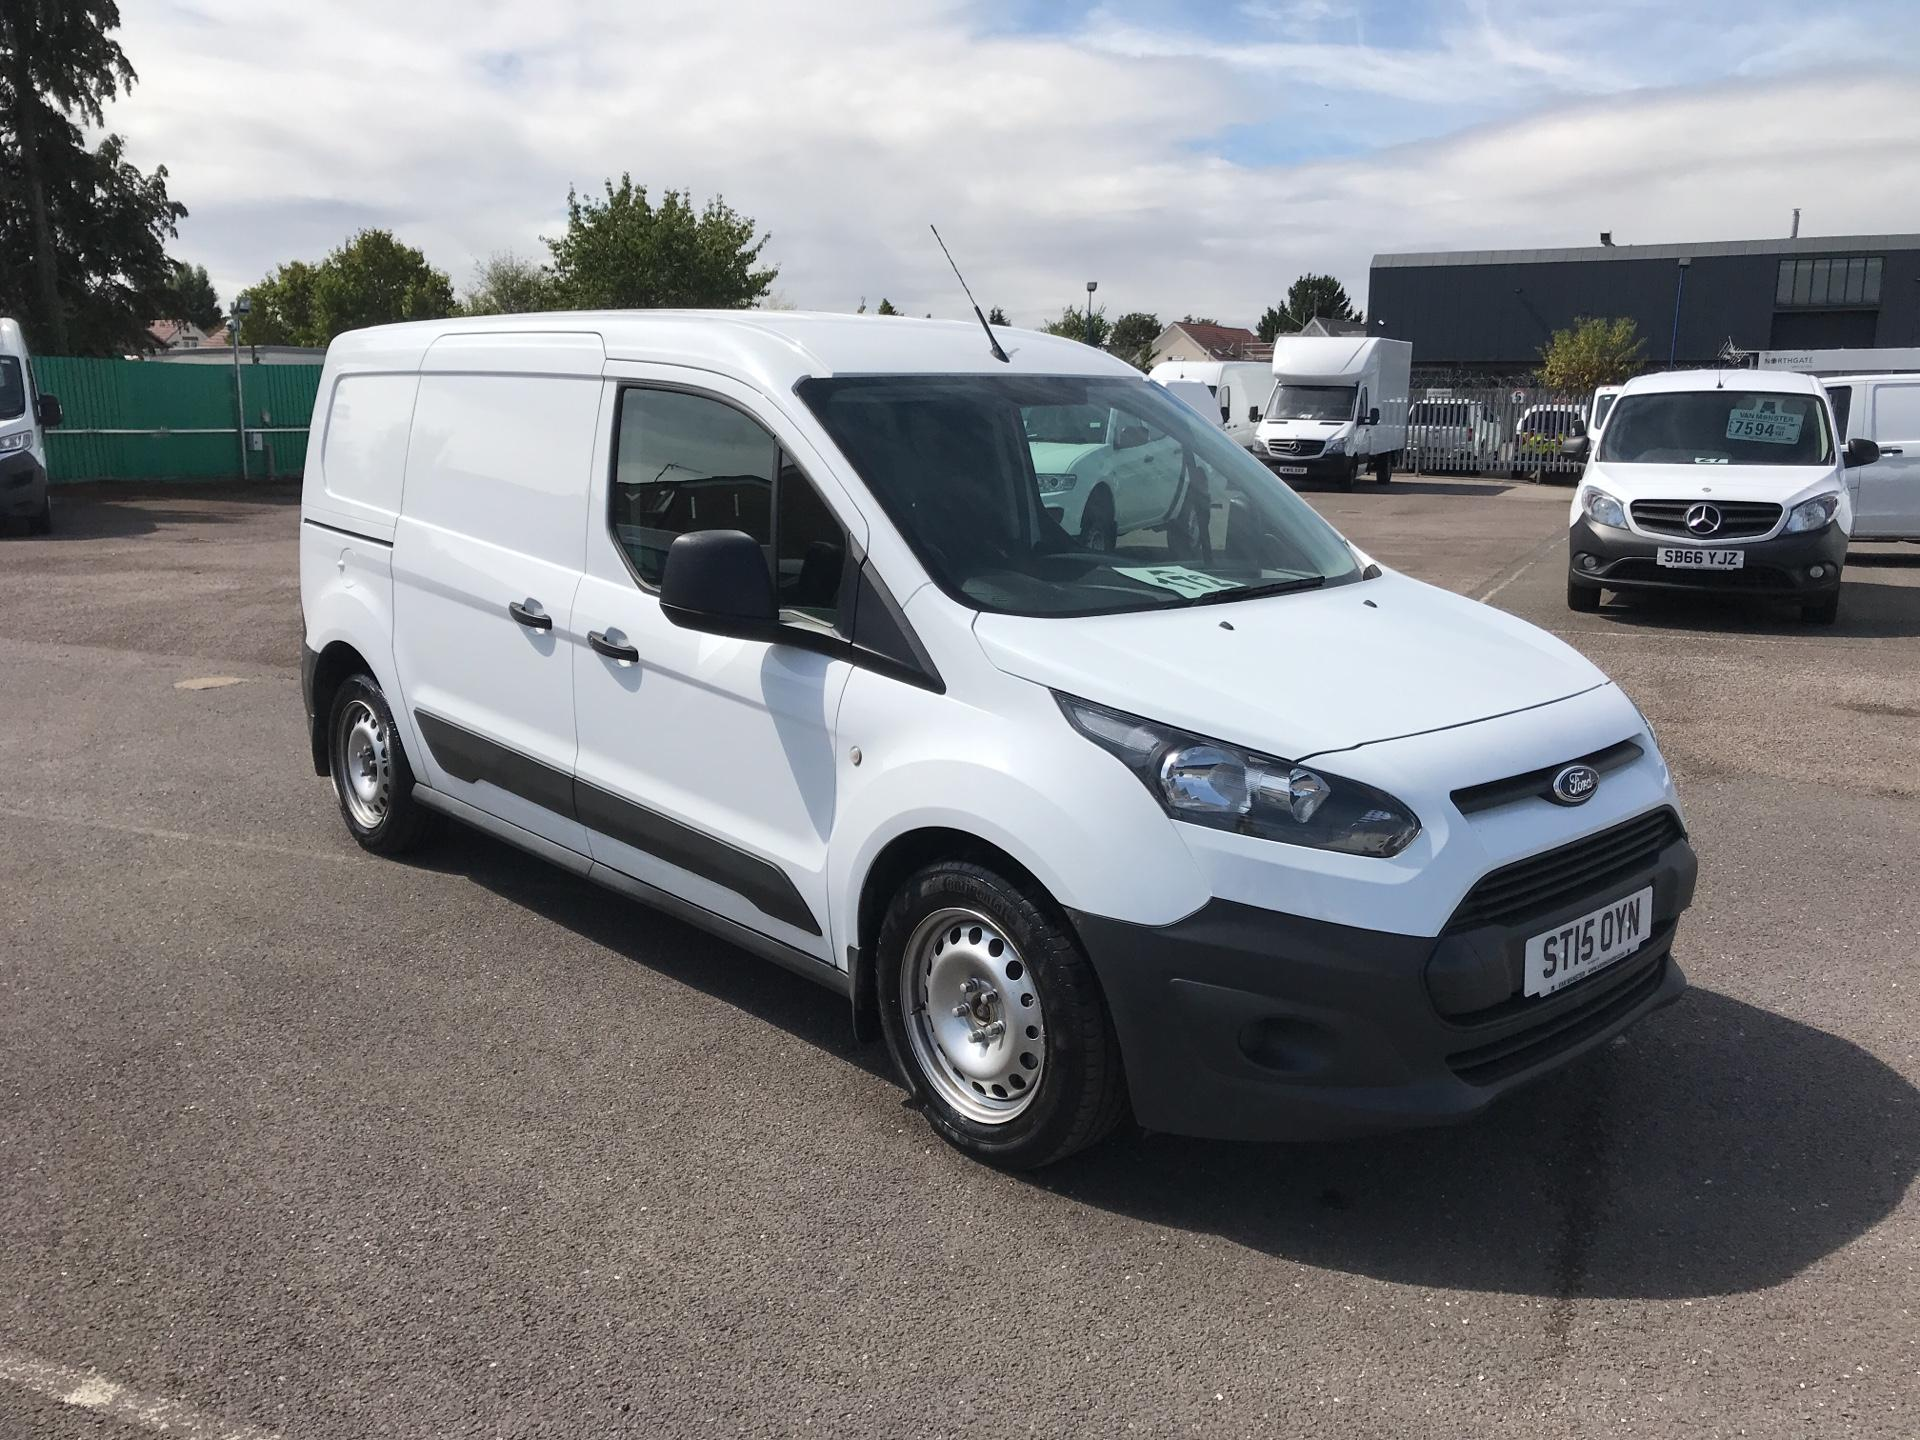 2015 Ford Transit Connect 1.6 Tdci 95Ps D/Cab Van (ST15OYN)